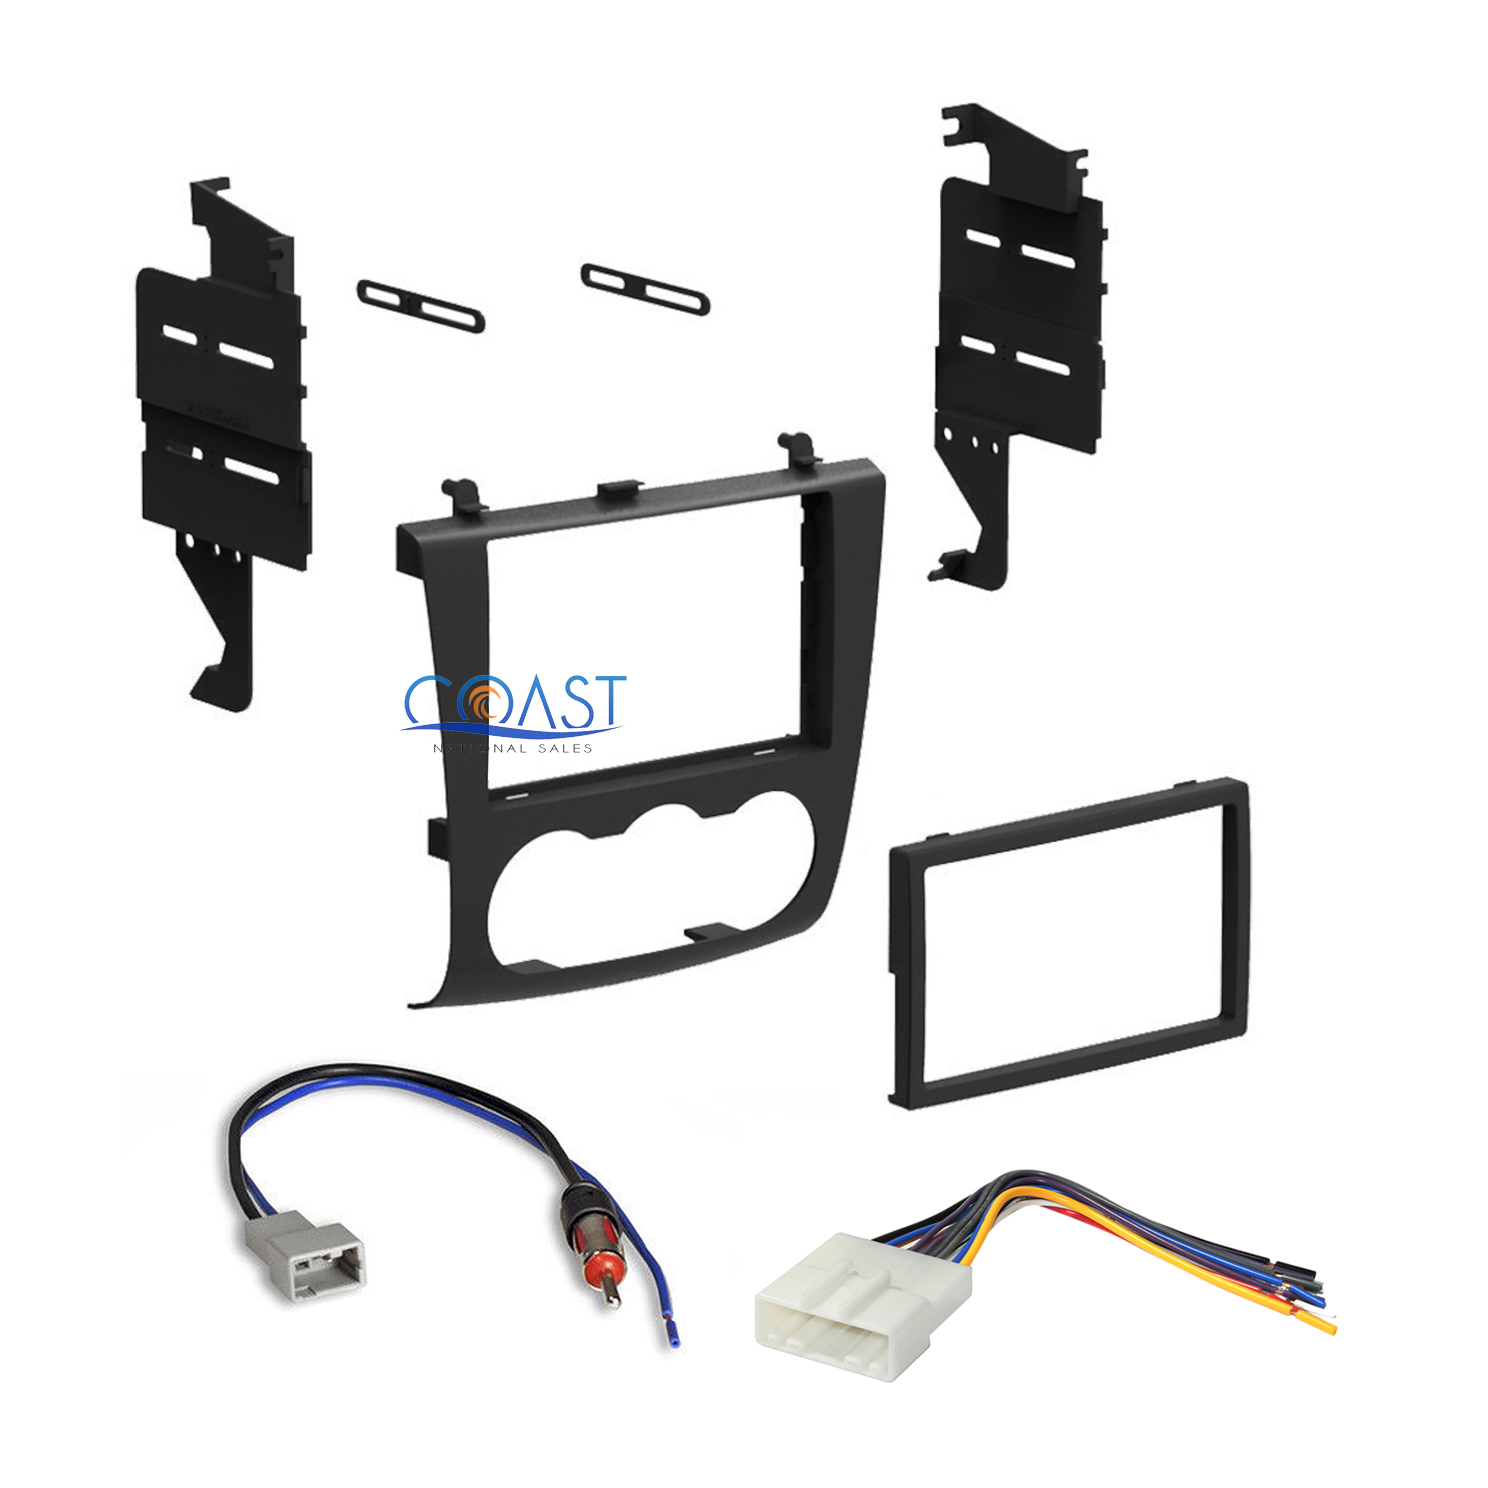 2007-2011 Nissan Altima Single//Double Din Dash Kit Install Wire harness antenna